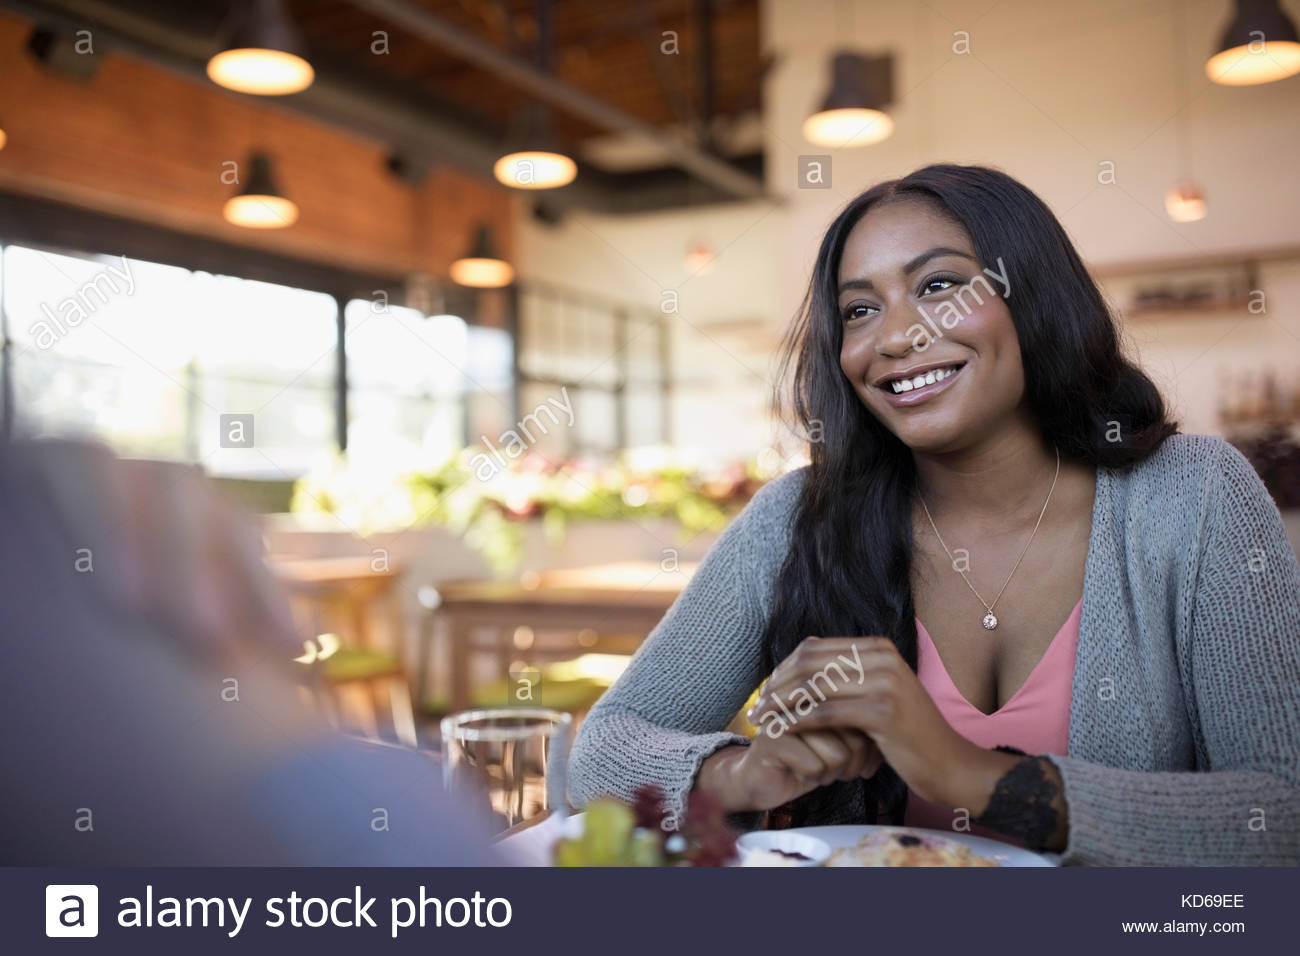 Smiling woman dining at restaurant table - Stock Image